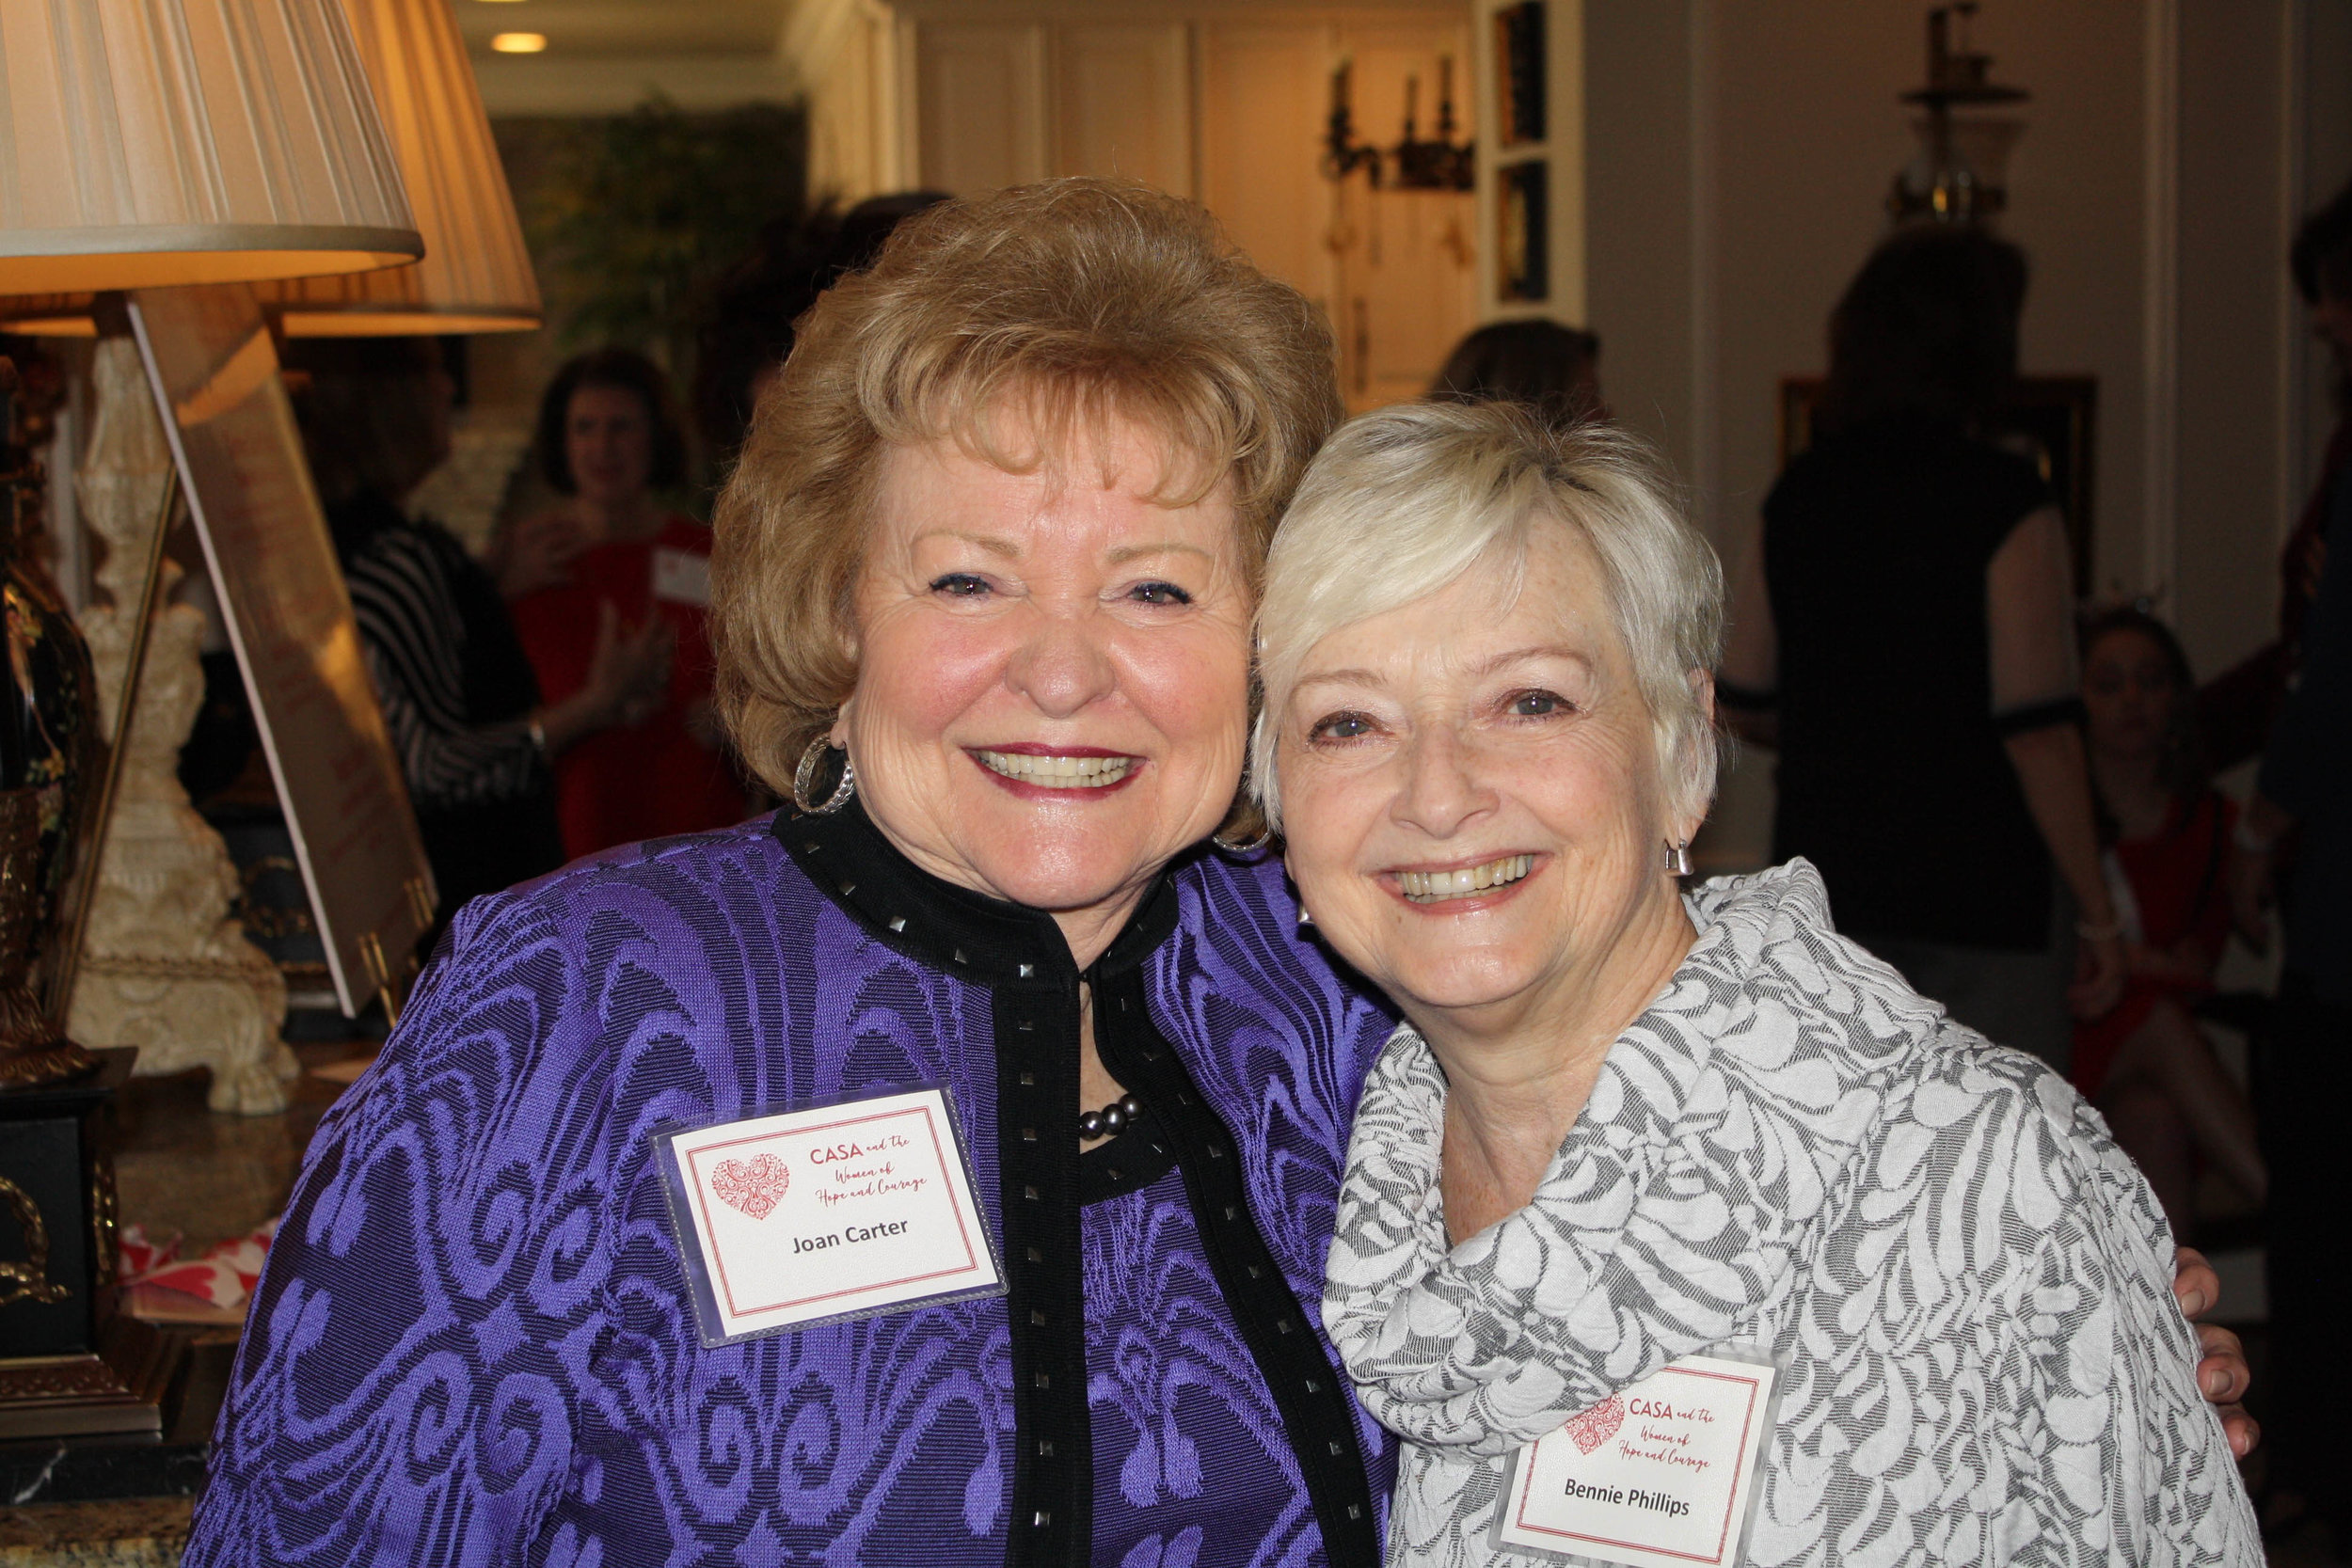 Joan Carter and Bennie Phillips